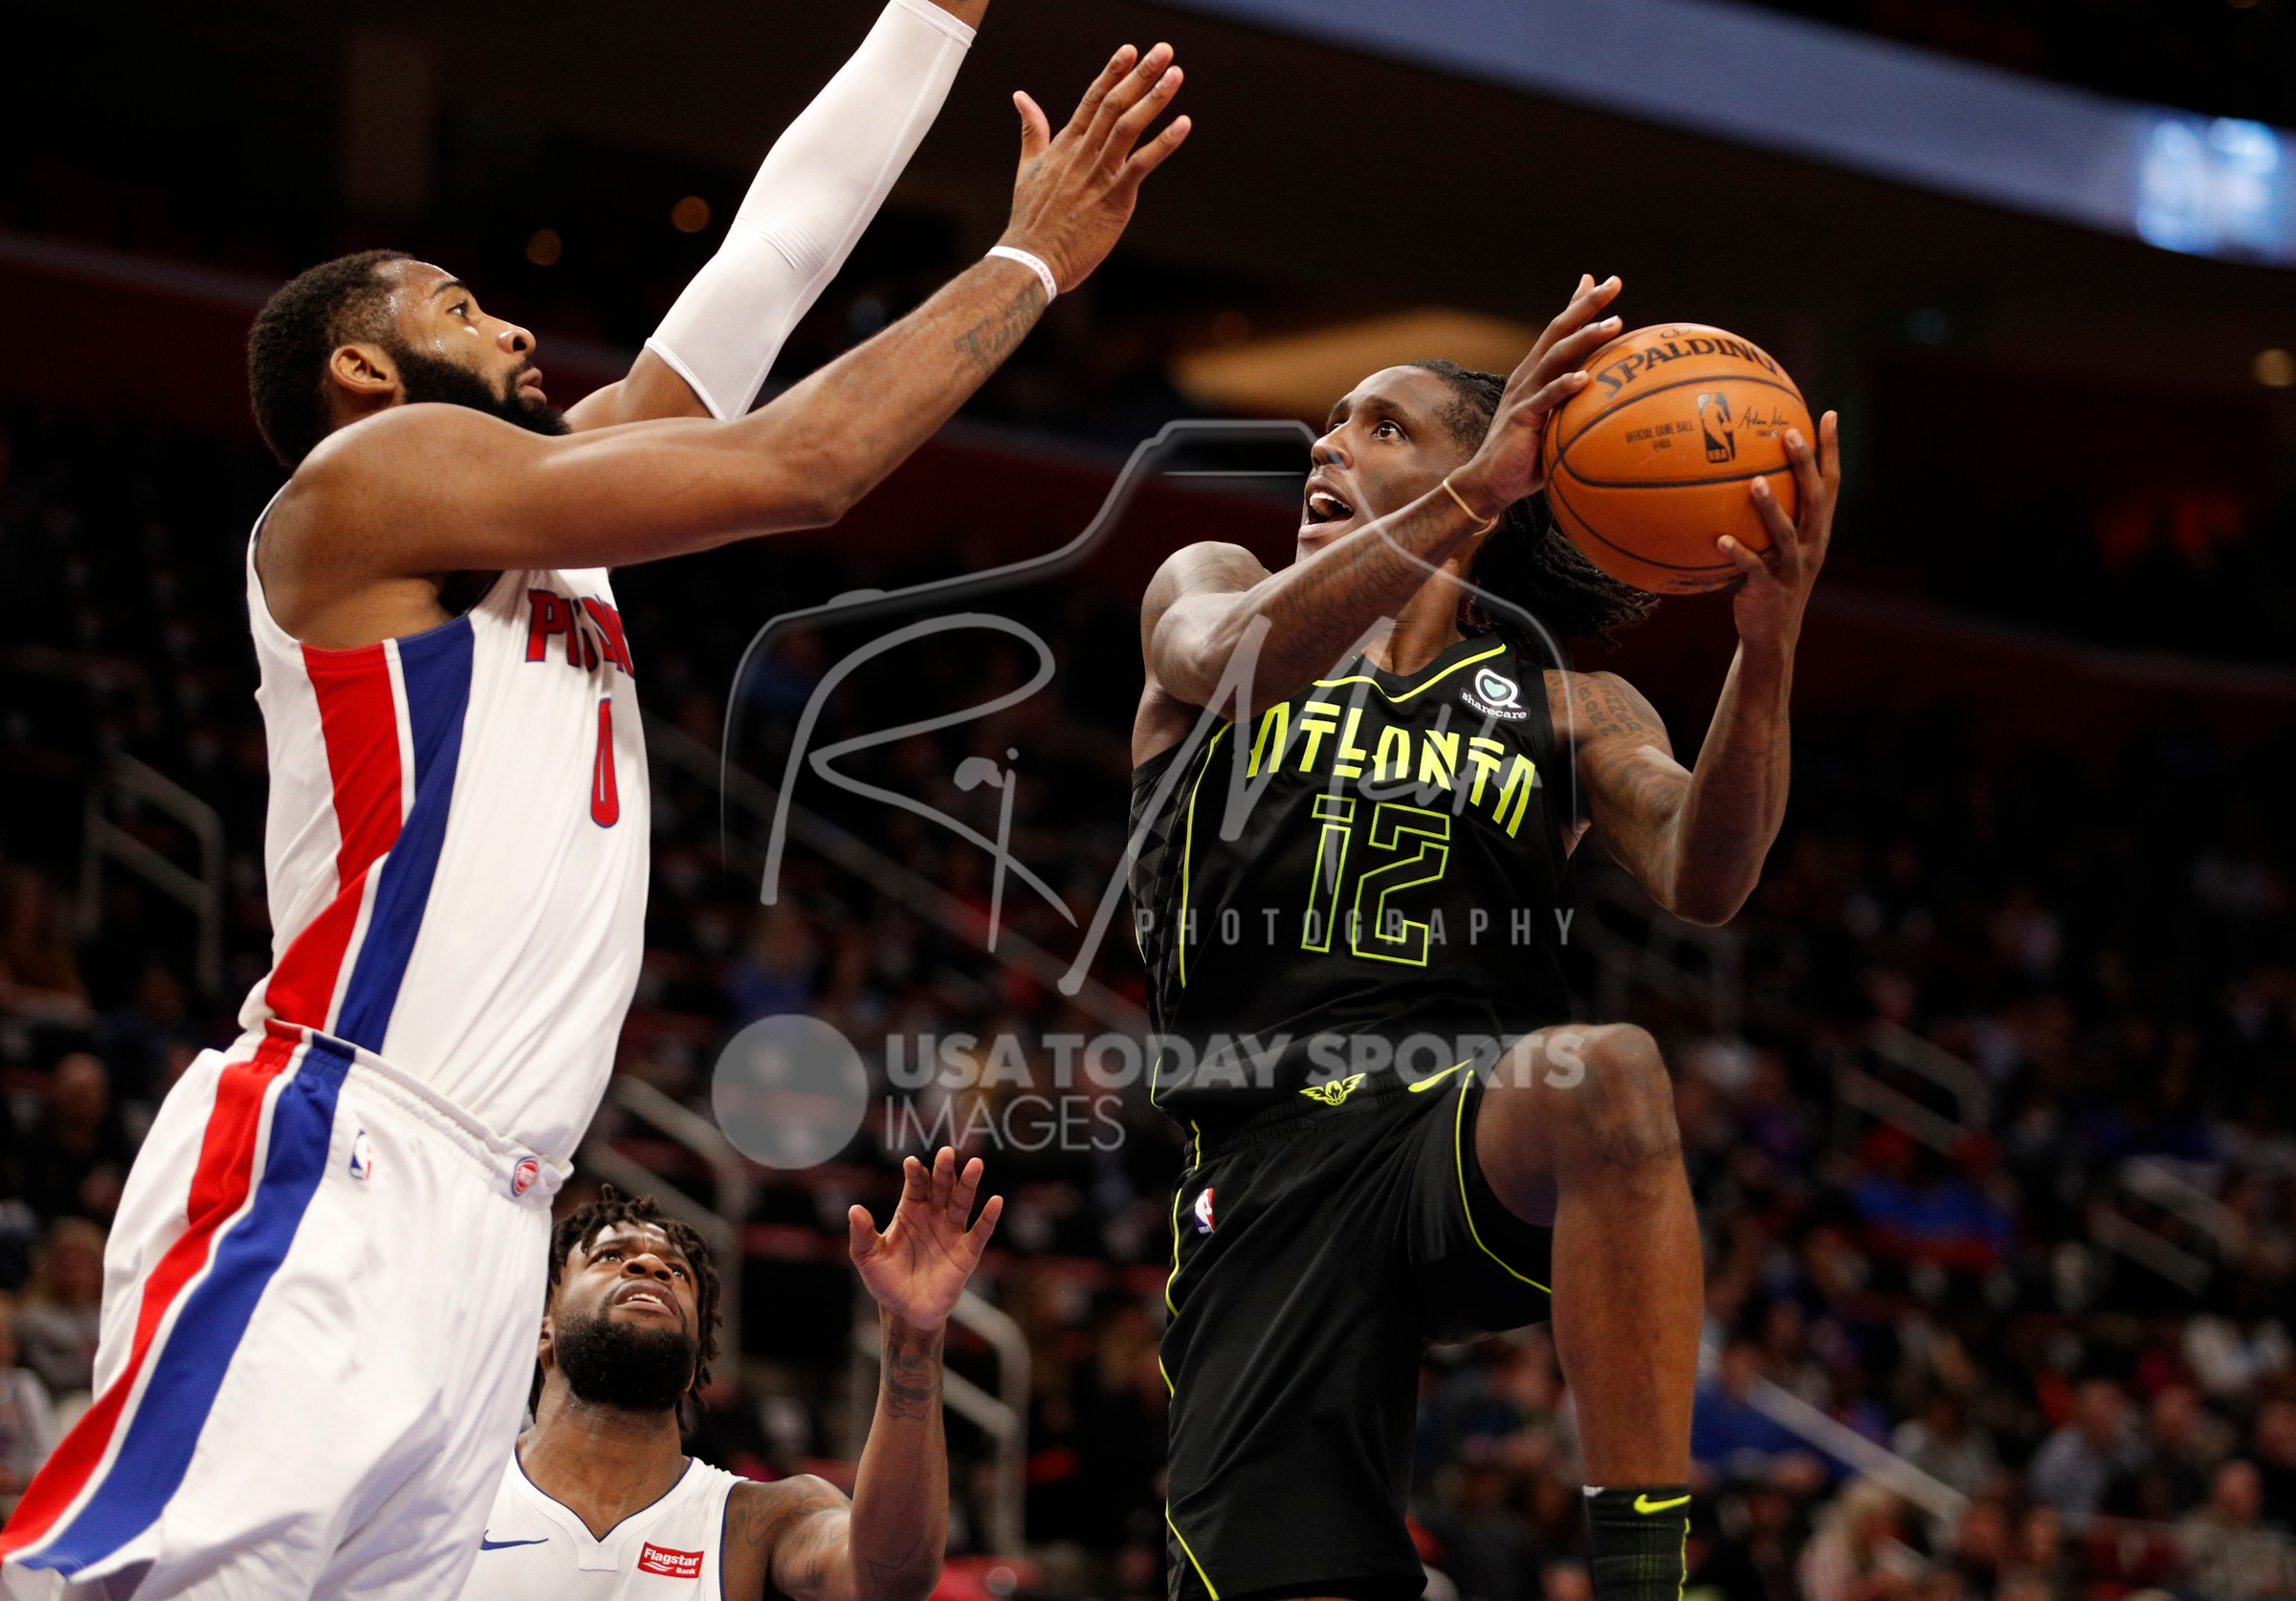 Feb 14, 2018; Detroit, MI, USA; Atlanta Hawks forward Taurean Prince (12) takes a shot against Detroit Pistons center Andre Drummond (0) during the fourth quarter at Little Caesars Arena. Mandatory Credit: Raj Mehta-USA TODAY Sports